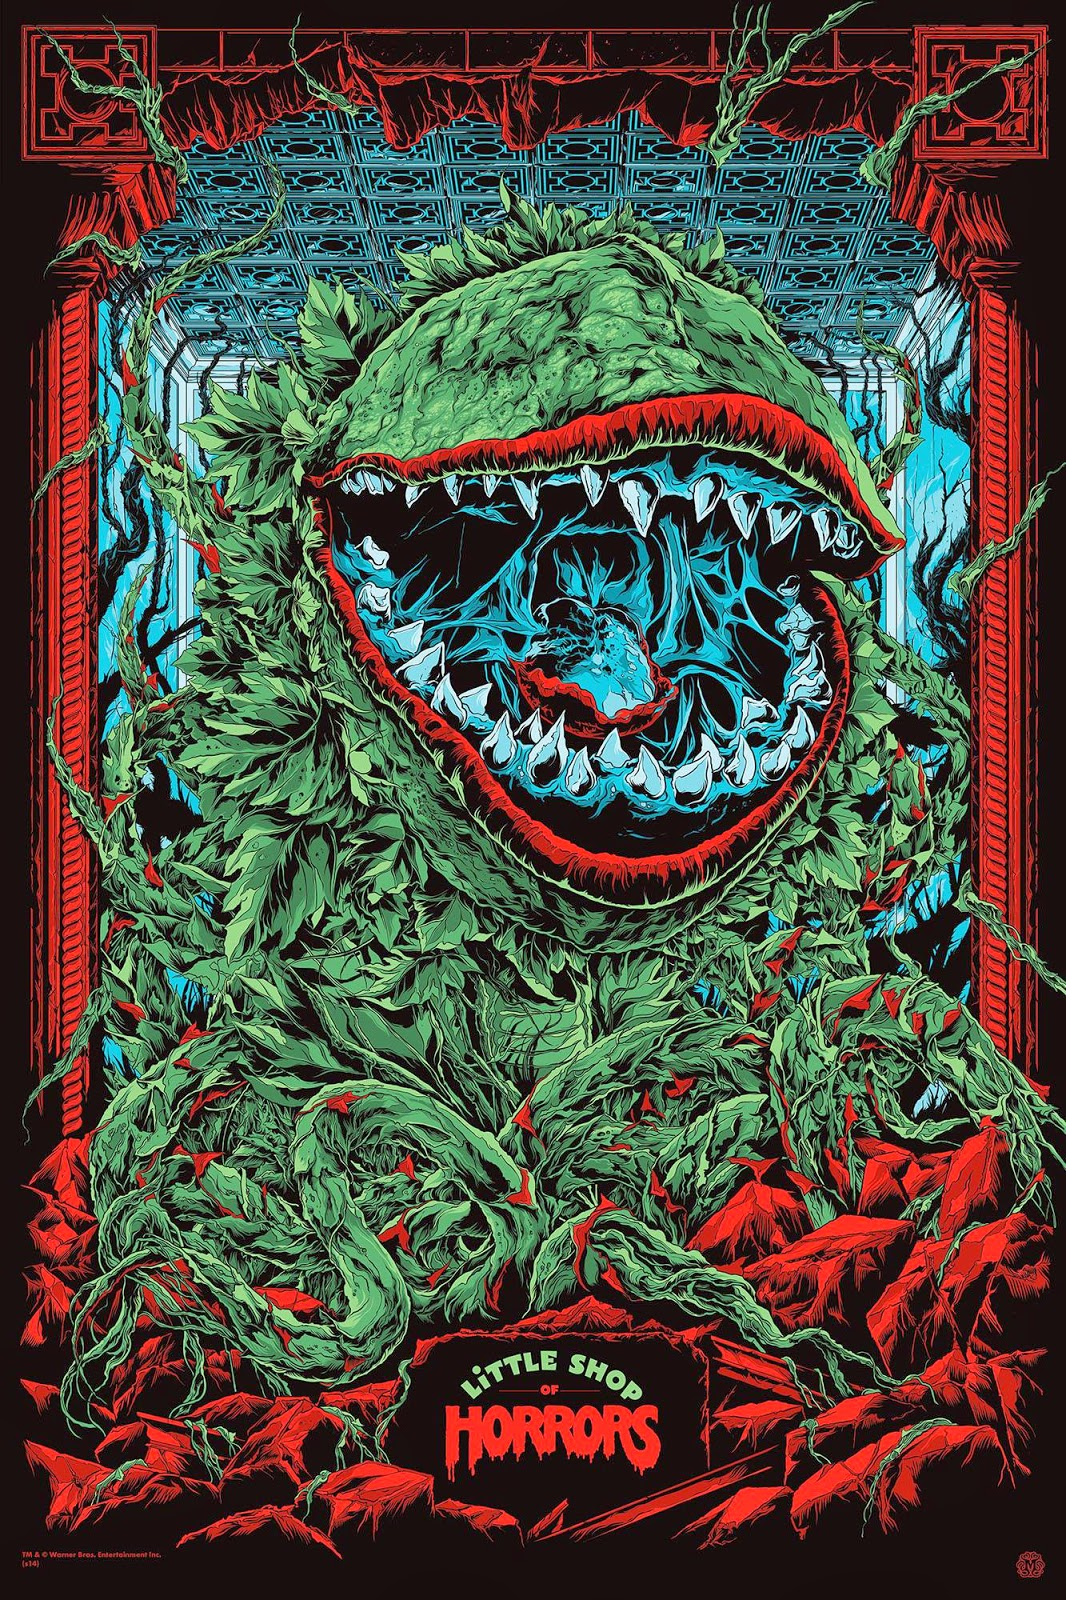 LITTLE SHOP OF HORRORS (variant) by Ken Taylor